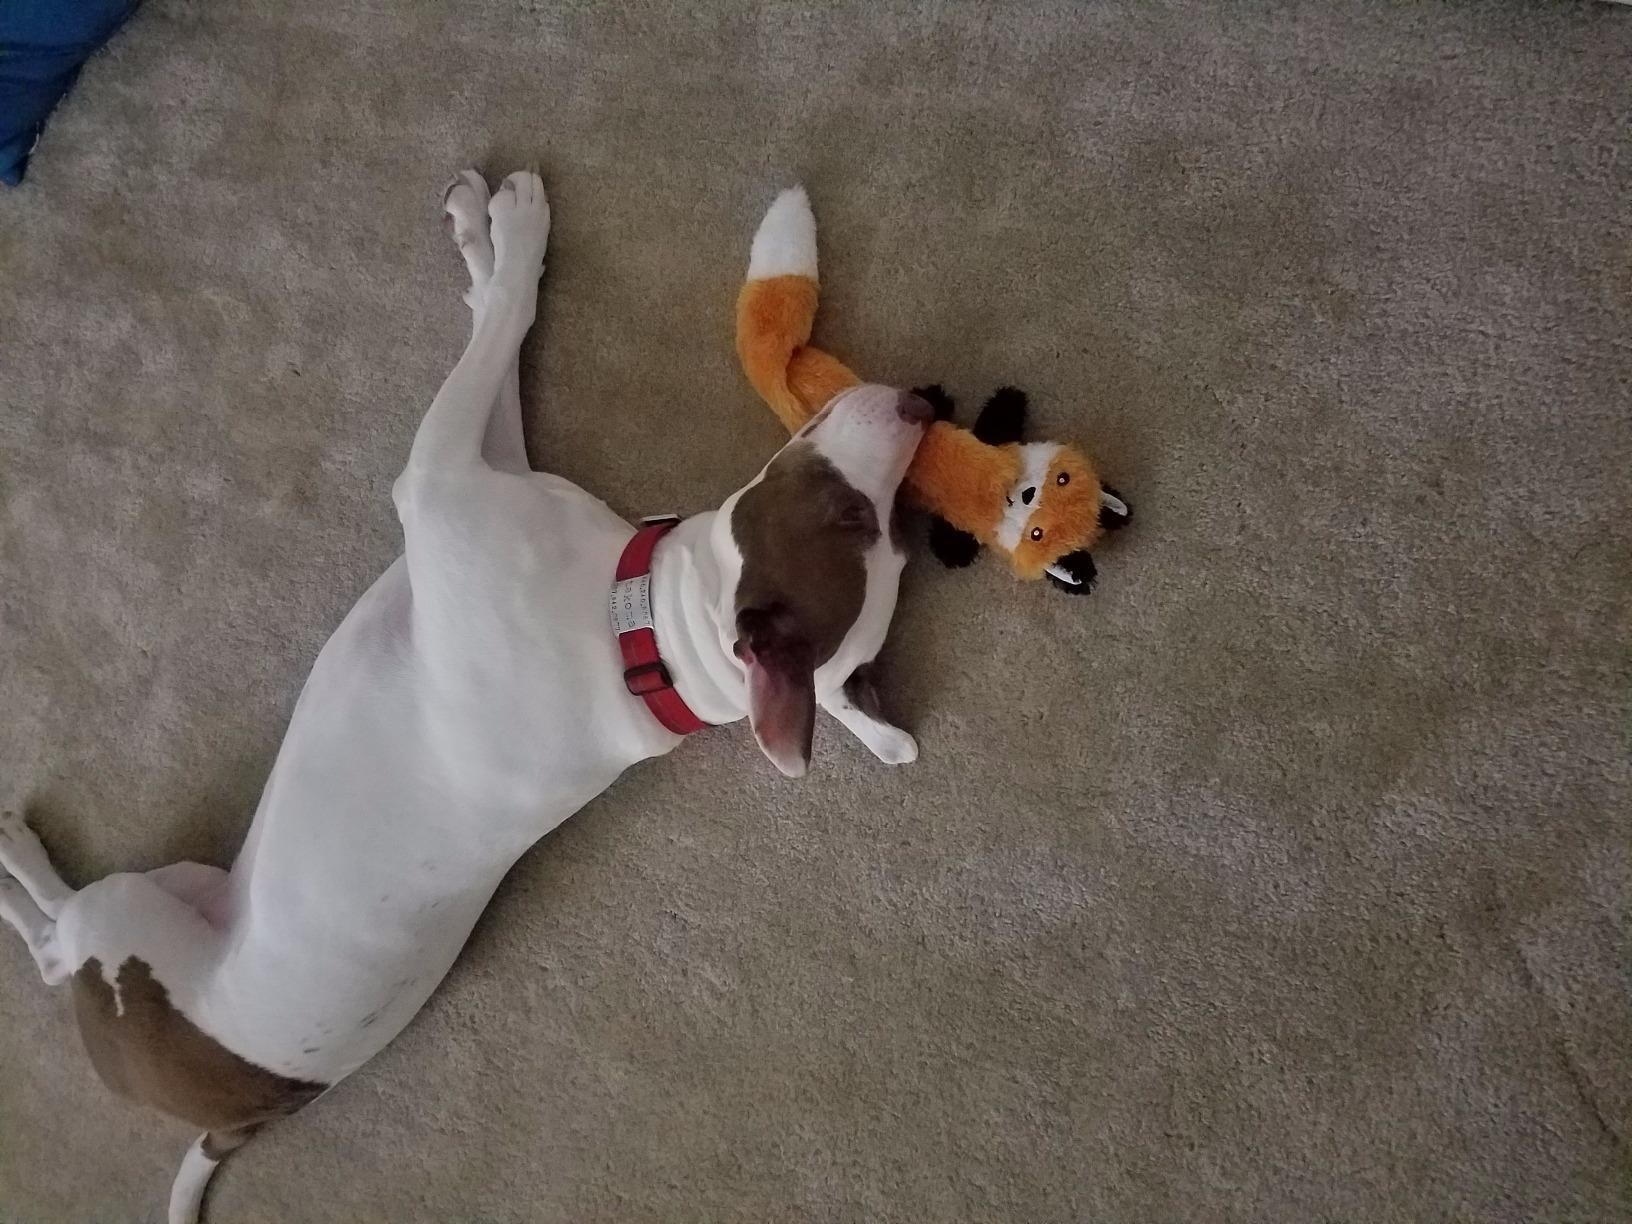 a dog laying with one of the toys